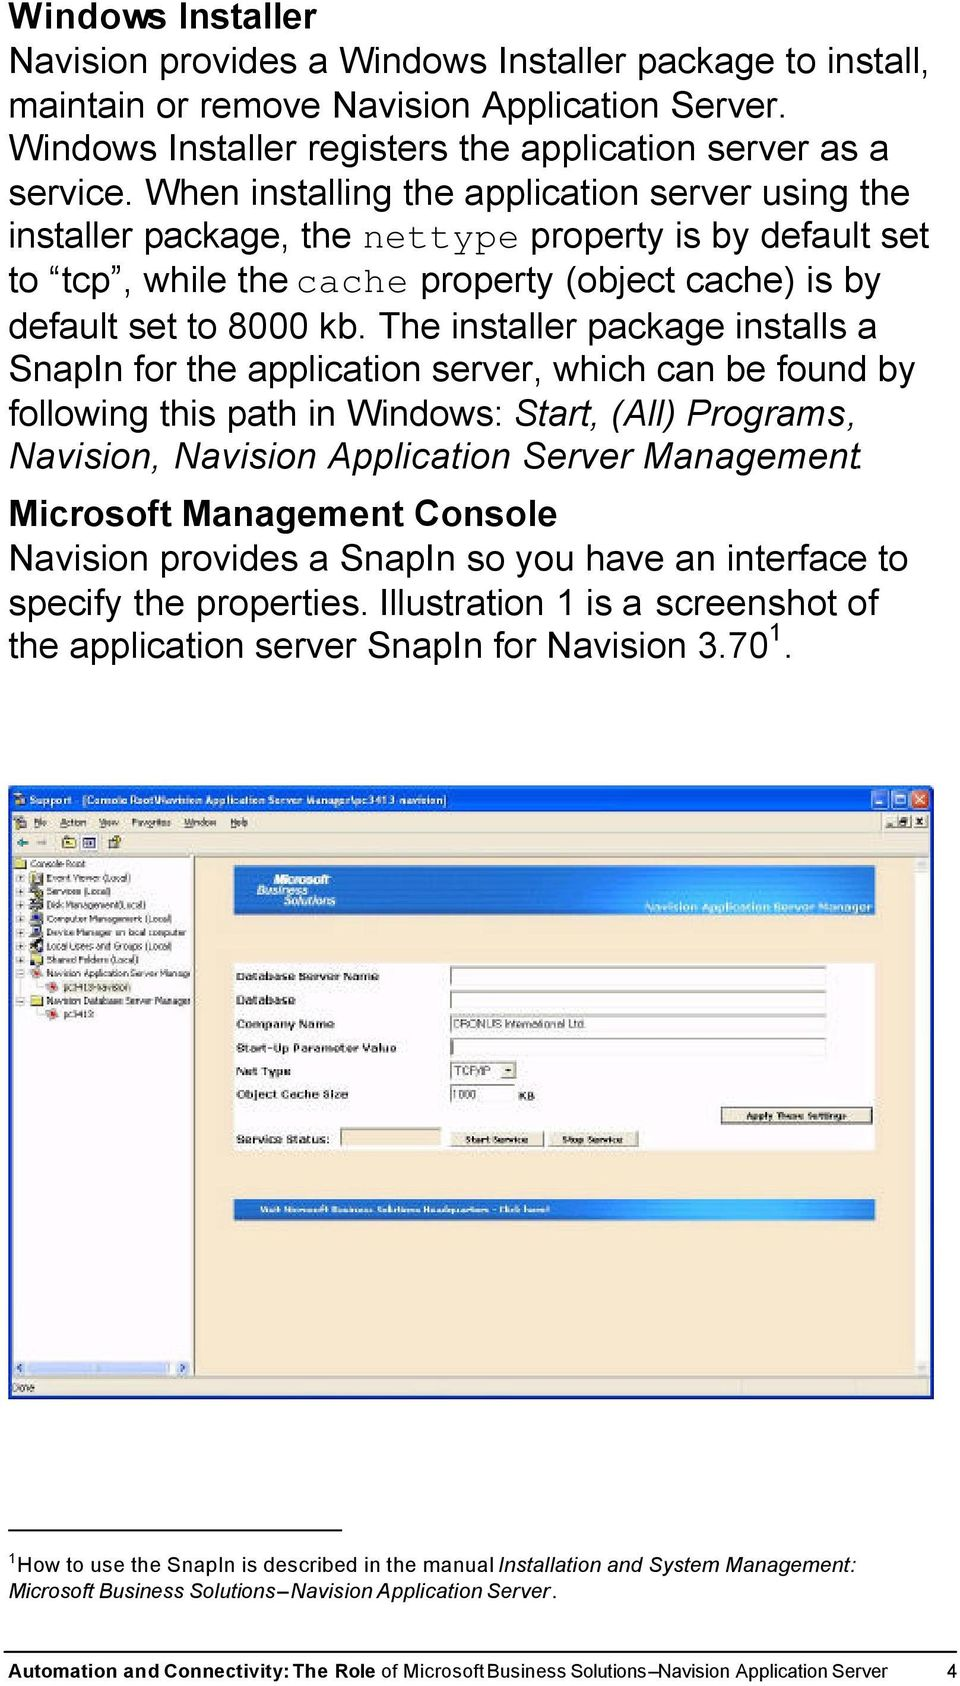 The installer package installs a SnapIn for the application server, which can be found by following this path in Windows: Start, (All) Programs, Navision, Navision Application Server Management.